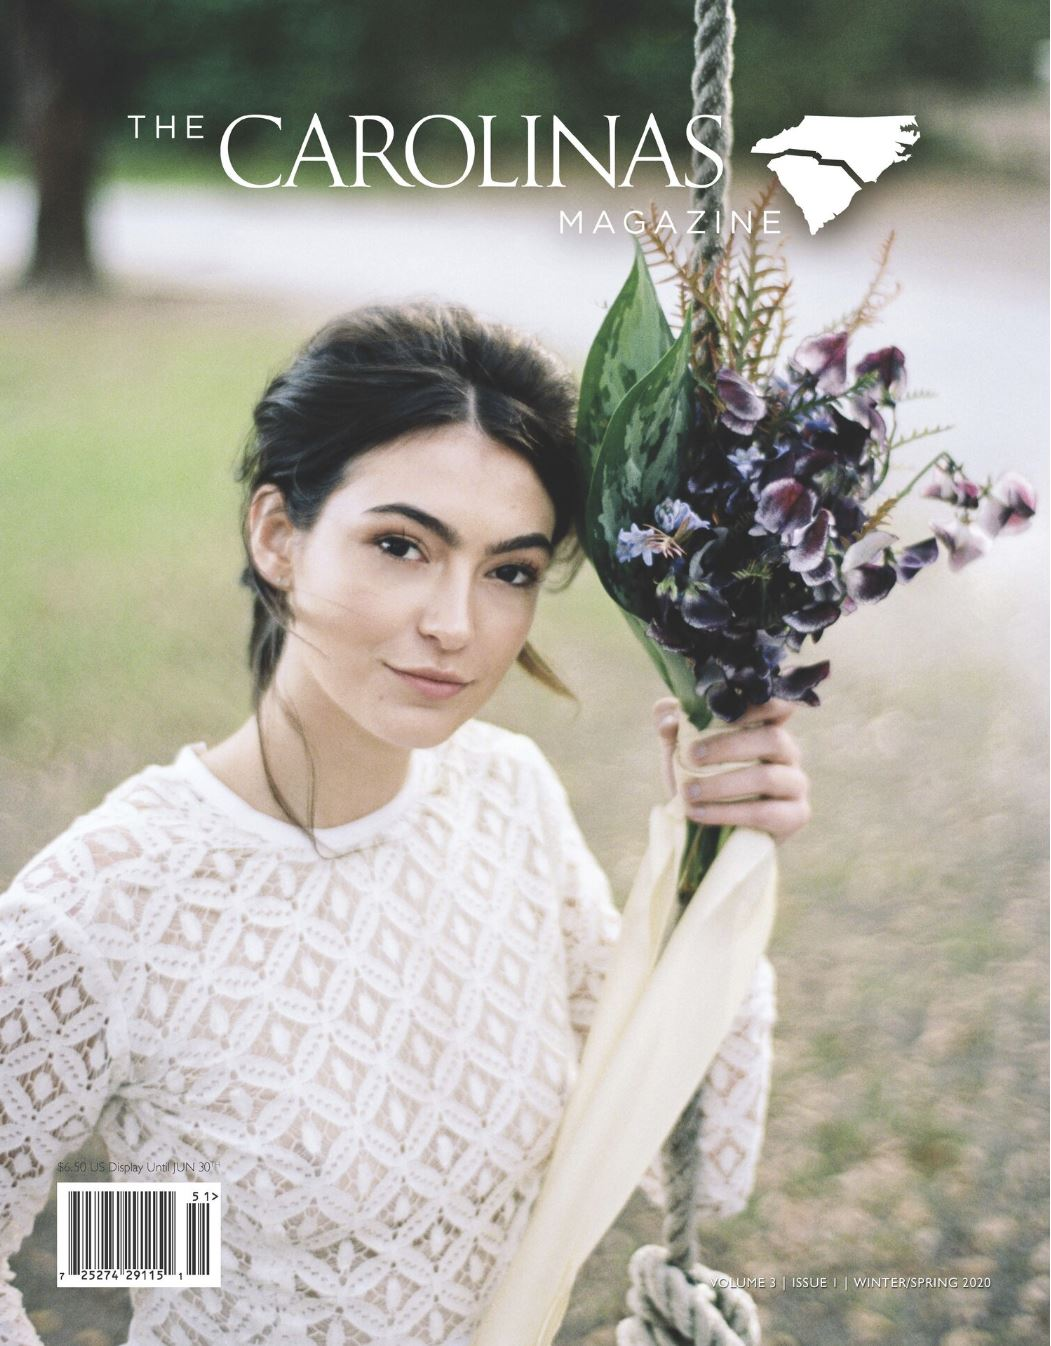 brian d smith carolinas magazine winter spring 2020 cover wingate bridal portrait haylee michalski in sweet caroline styles bodysuit with purple bouquet